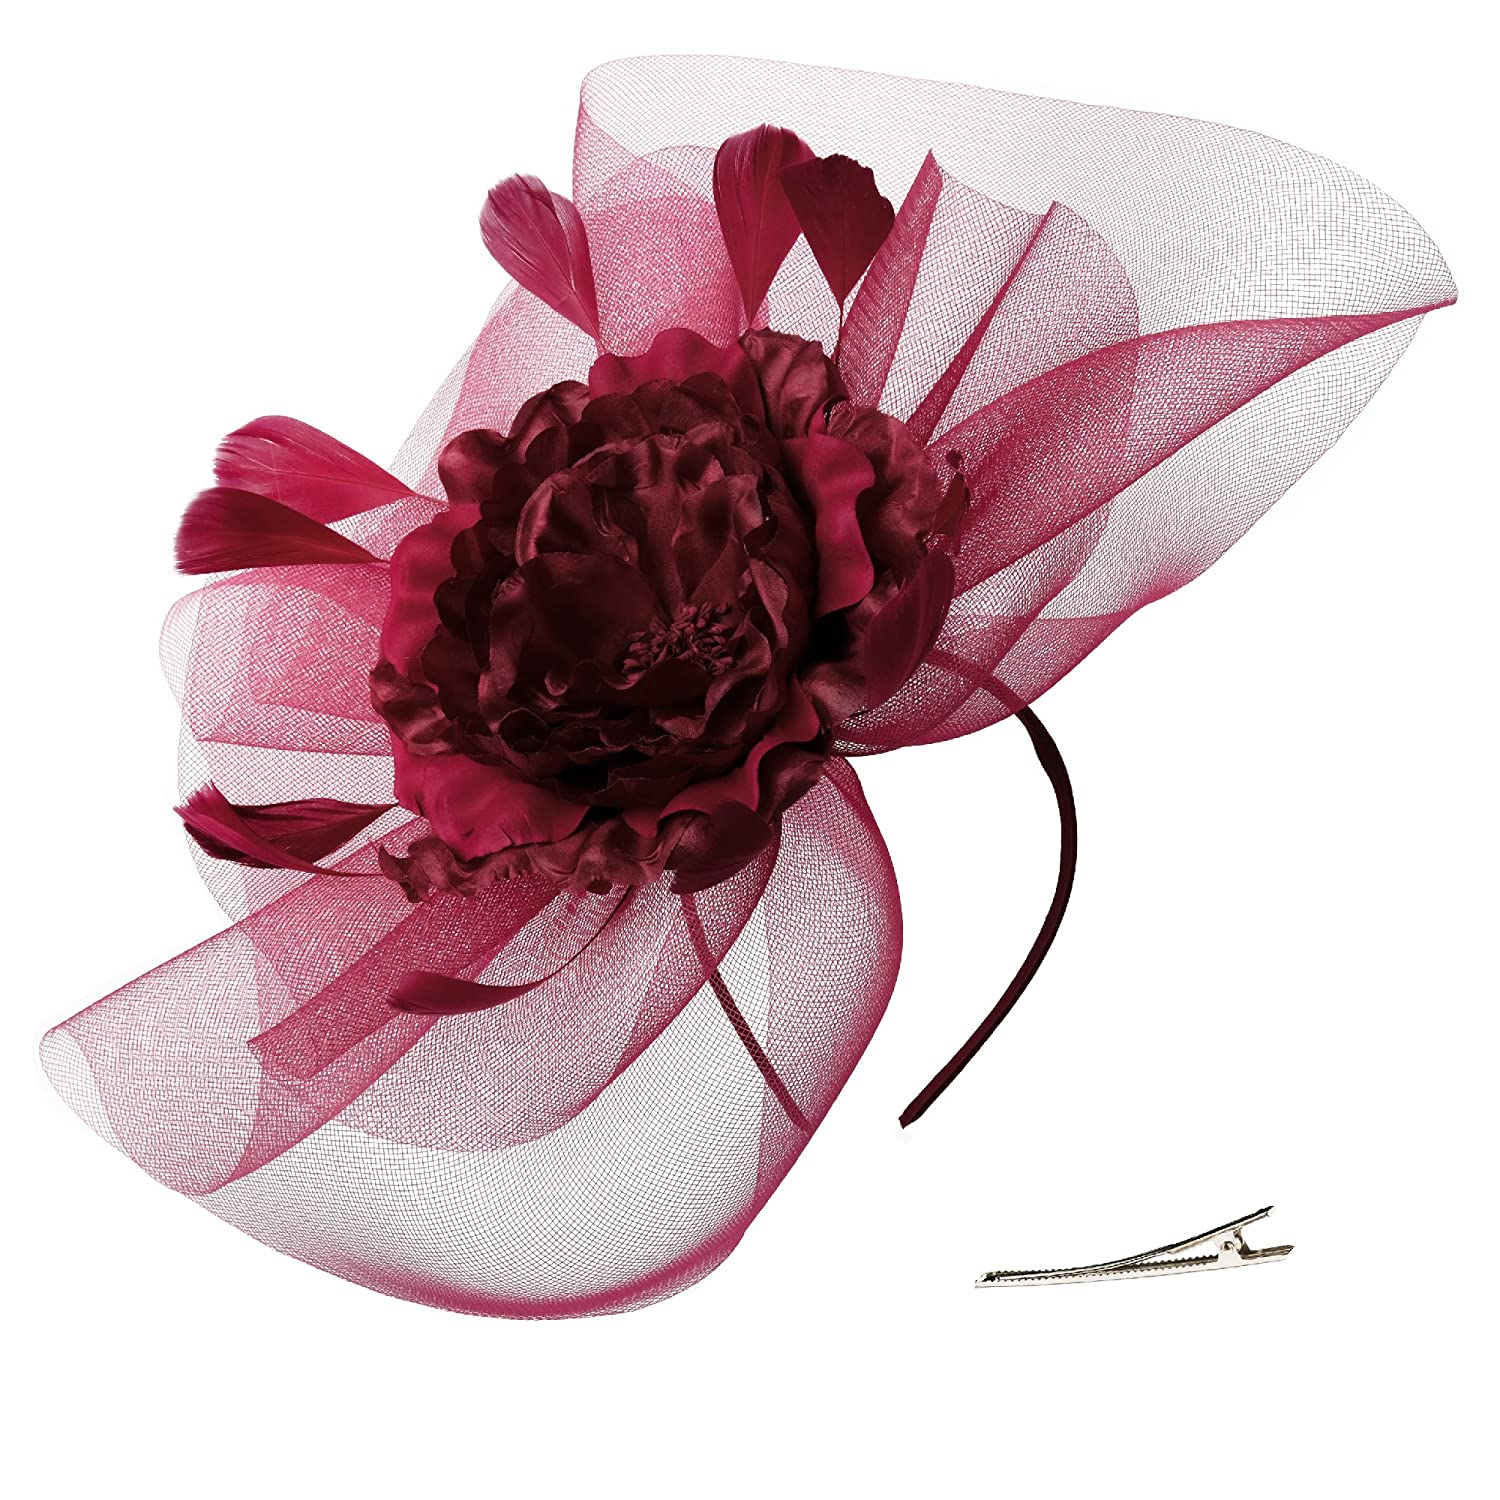 a6252711 Zivyes Wedding Fascinator Hat Feather Mesh Net Veil Party Hat Flower Derby  Hat with Clip and Headband for Women at Amazon Women's Clothing store: